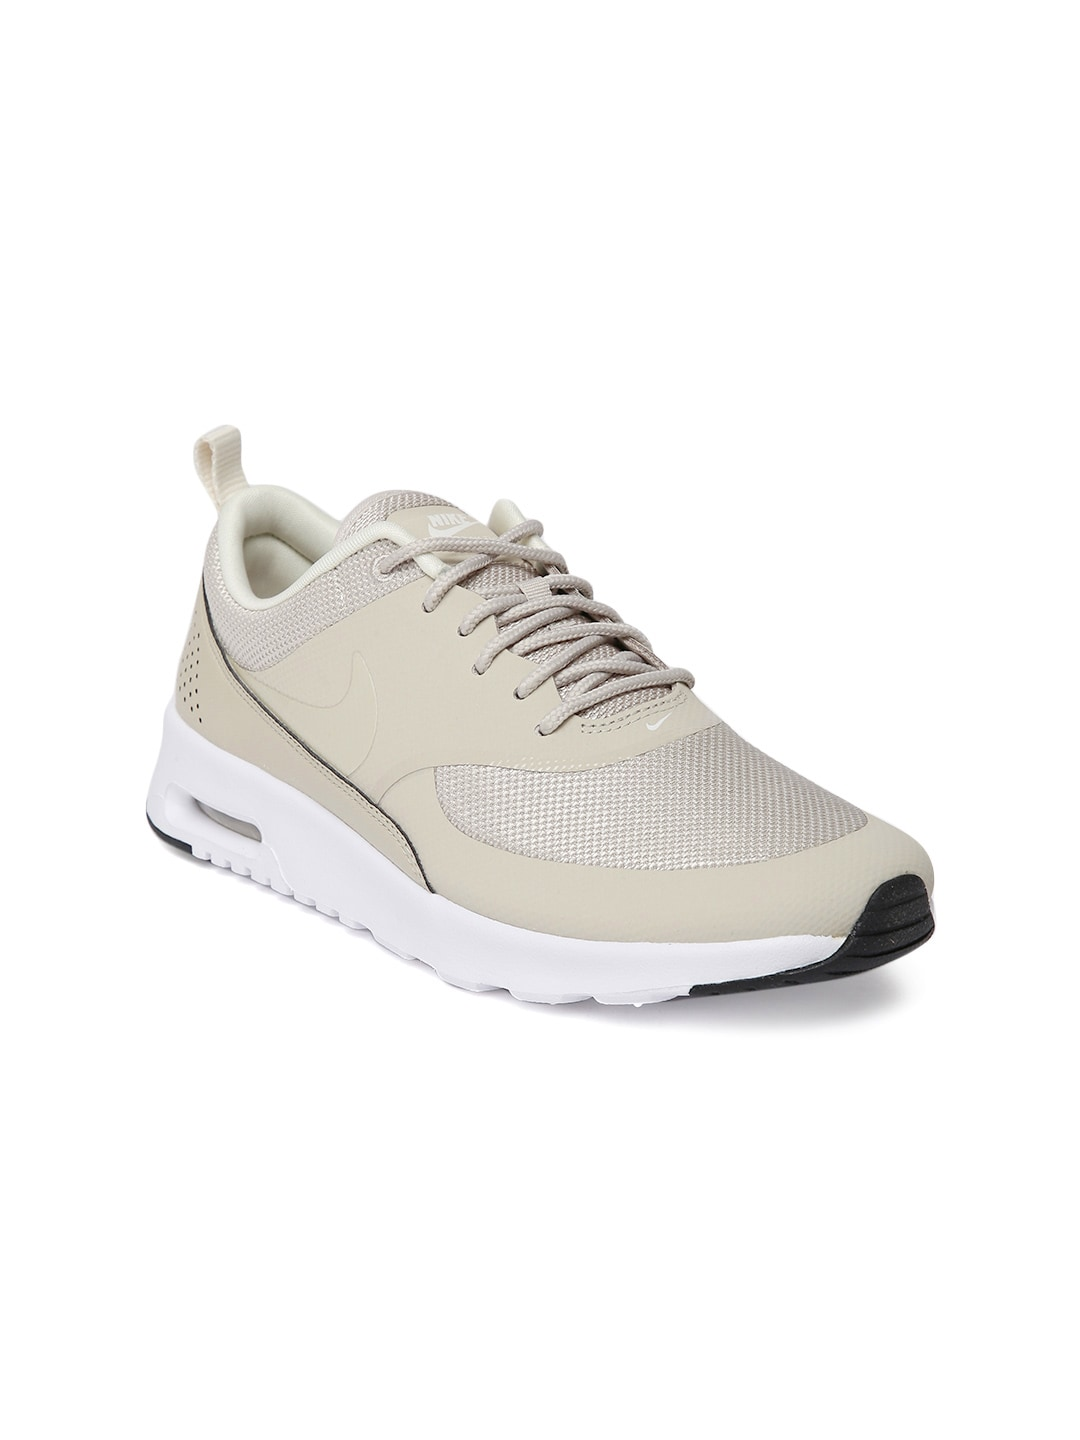 309cc830683 Nike Air Max - Buy Nike Air Max Shoes